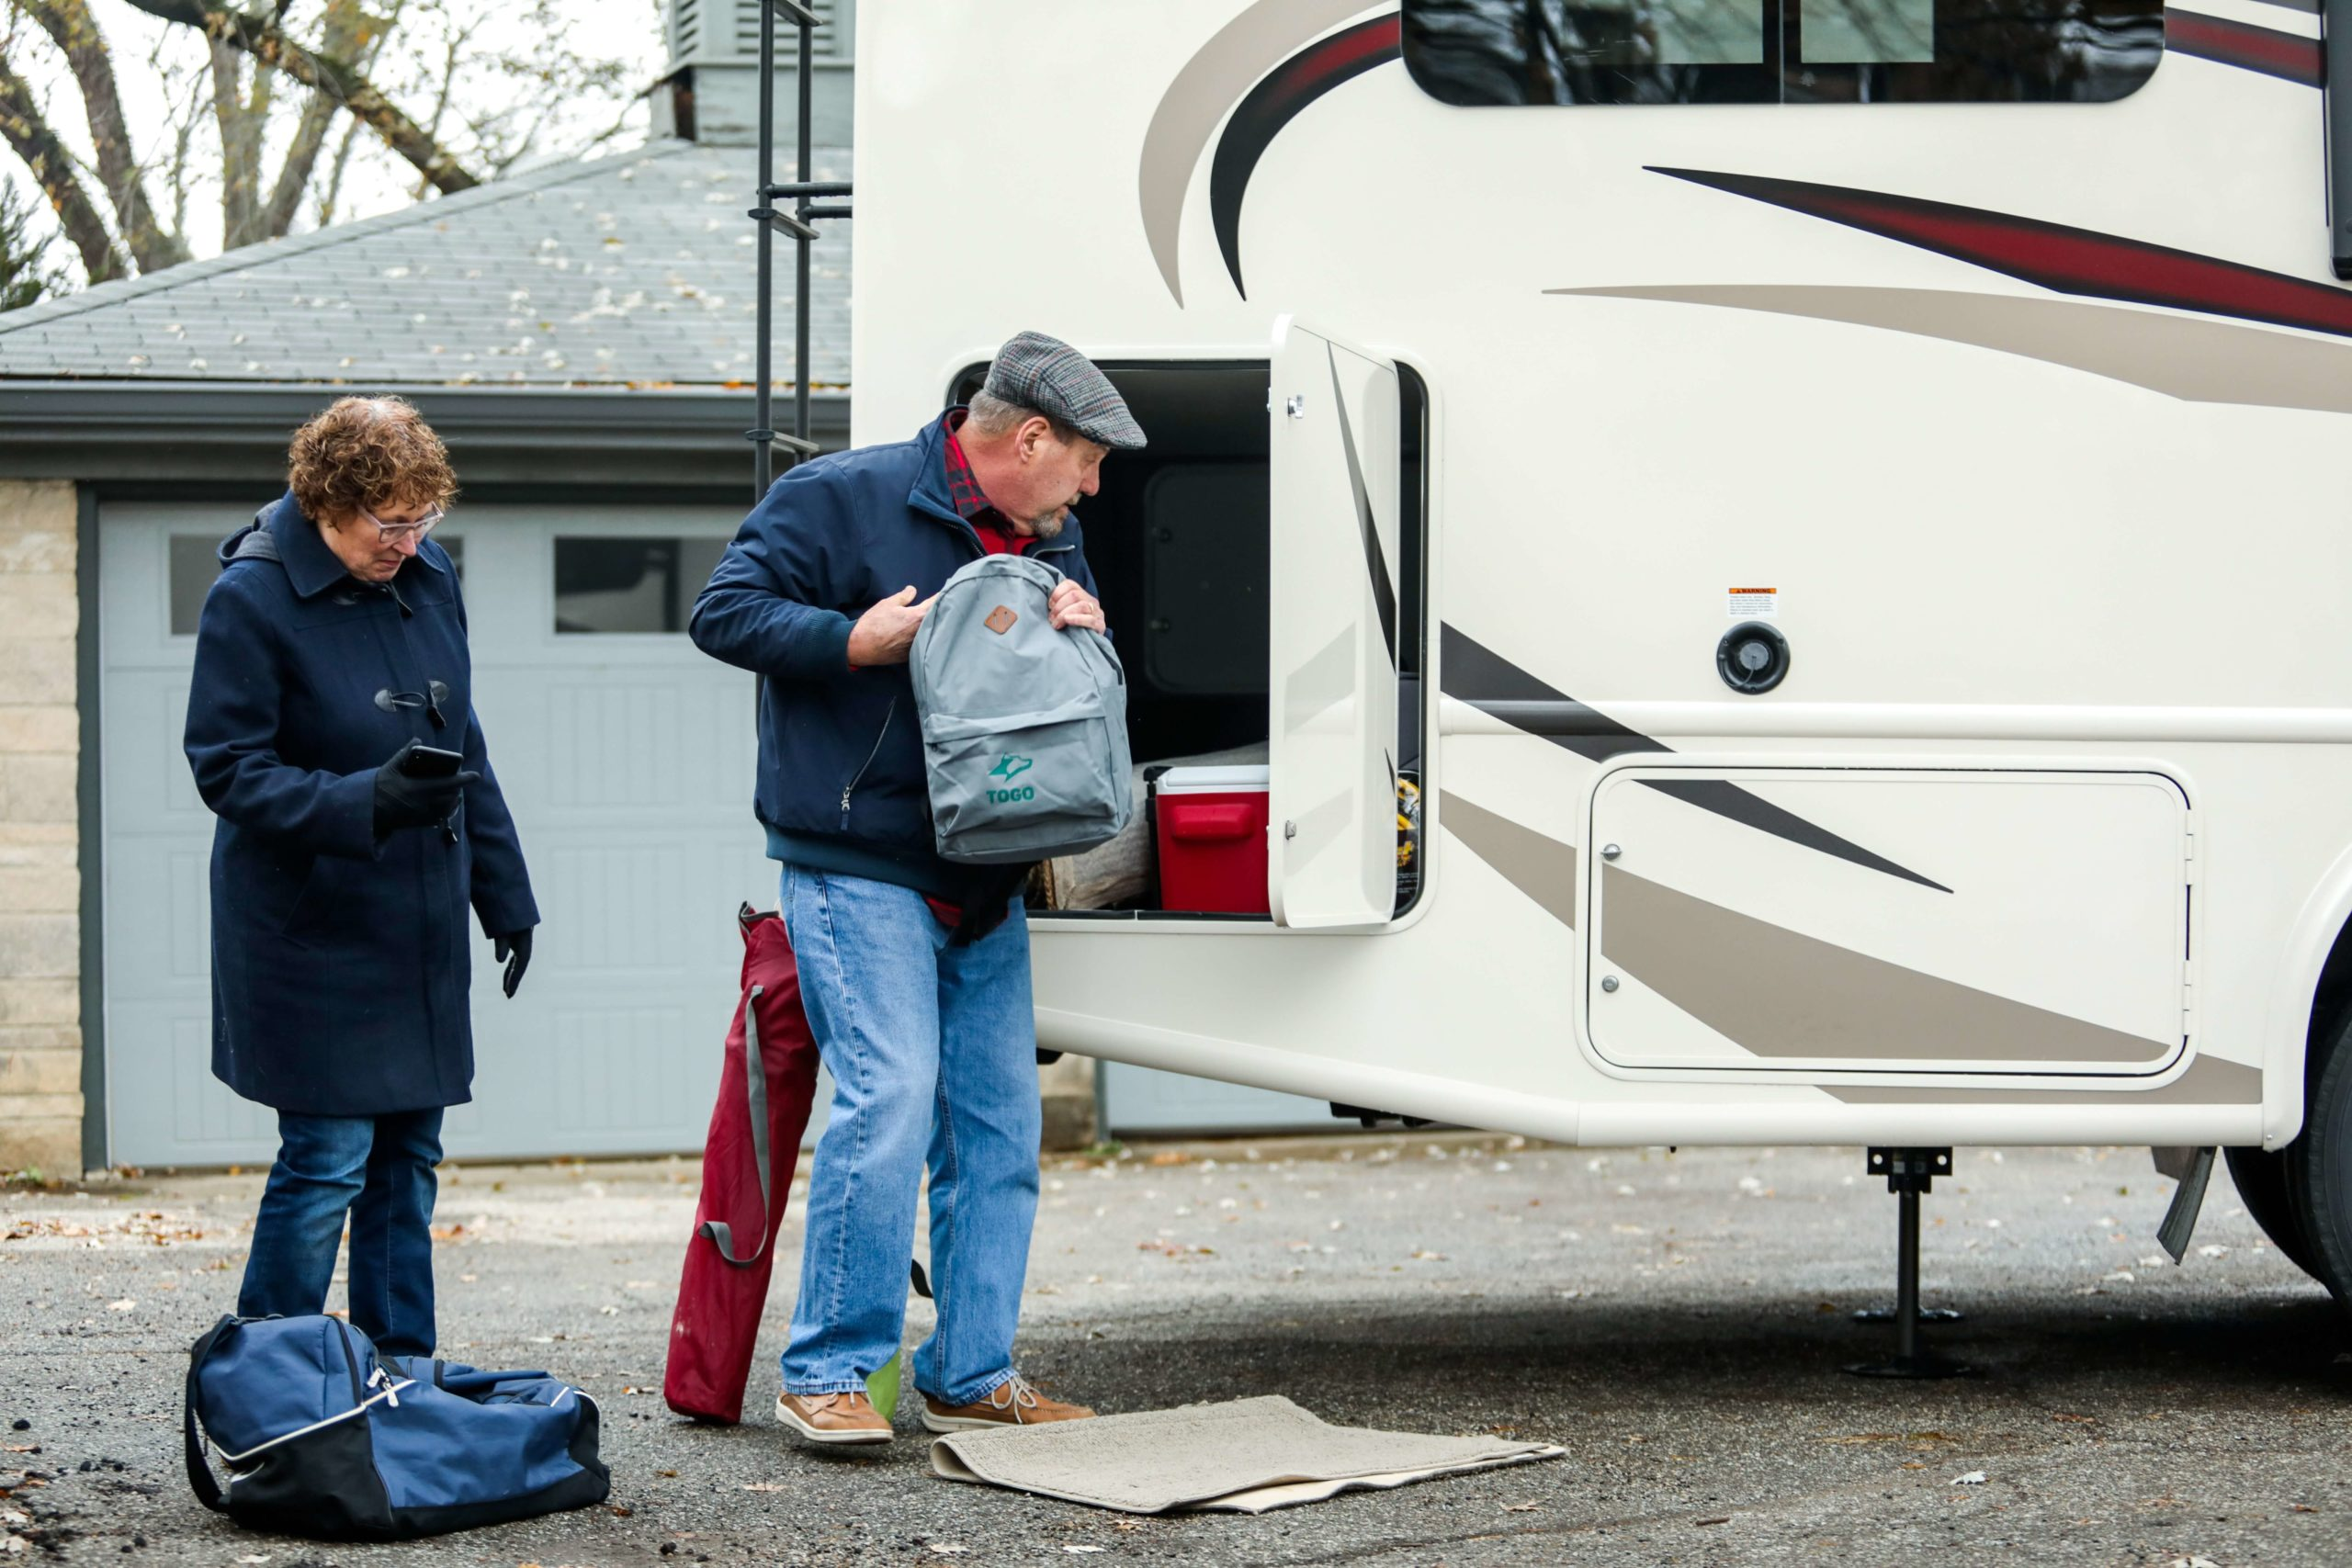 RV Packing Checklist: What To Pack For Your RV Trip Based on Where You're Going